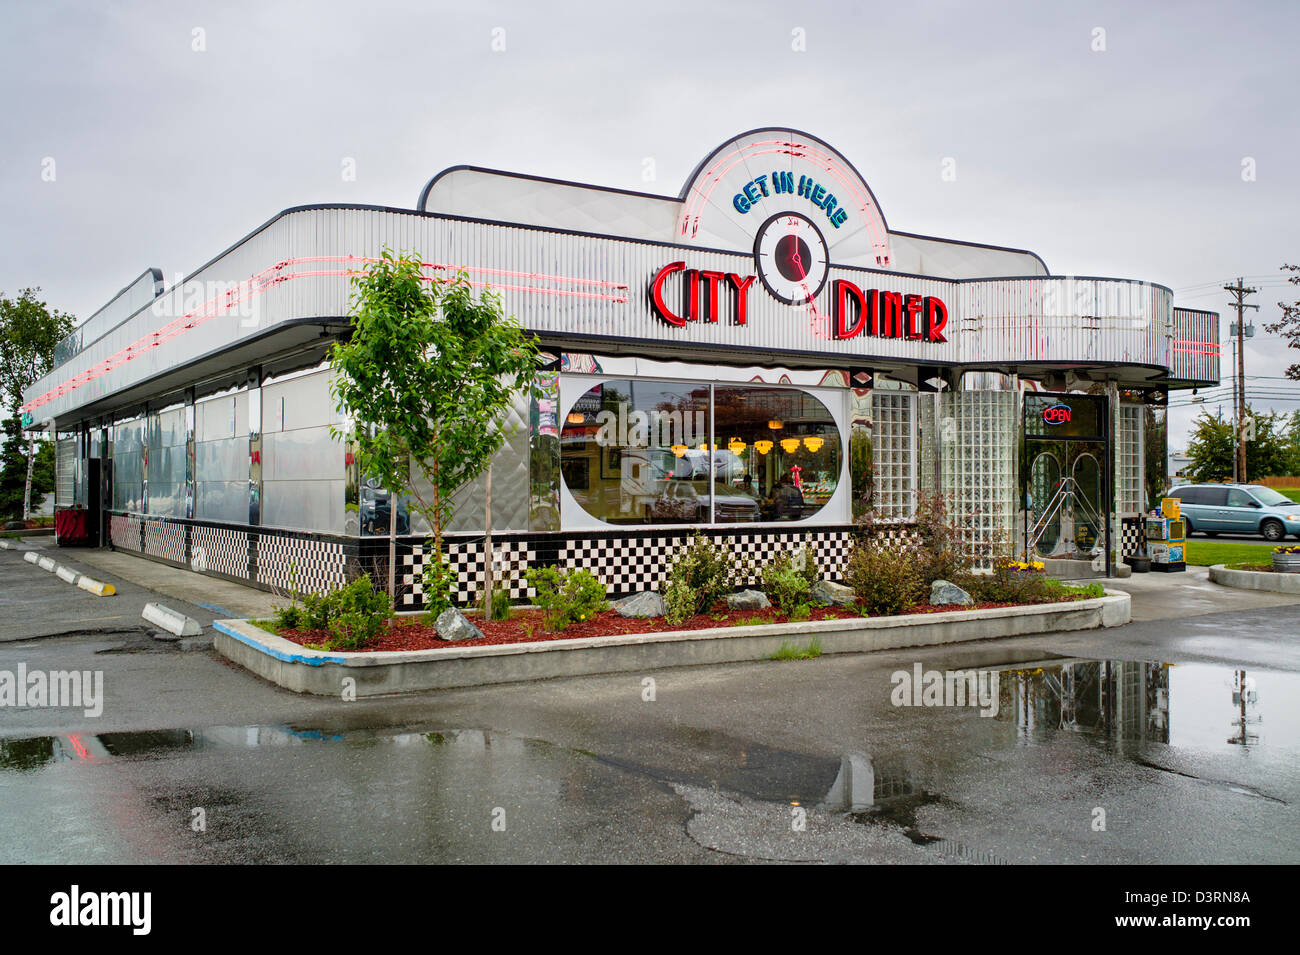 exterior view of retro design stainless steel city diner anchorage stock photo 53996666 alamy. Black Bedroom Furniture Sets. Home Design Ideas